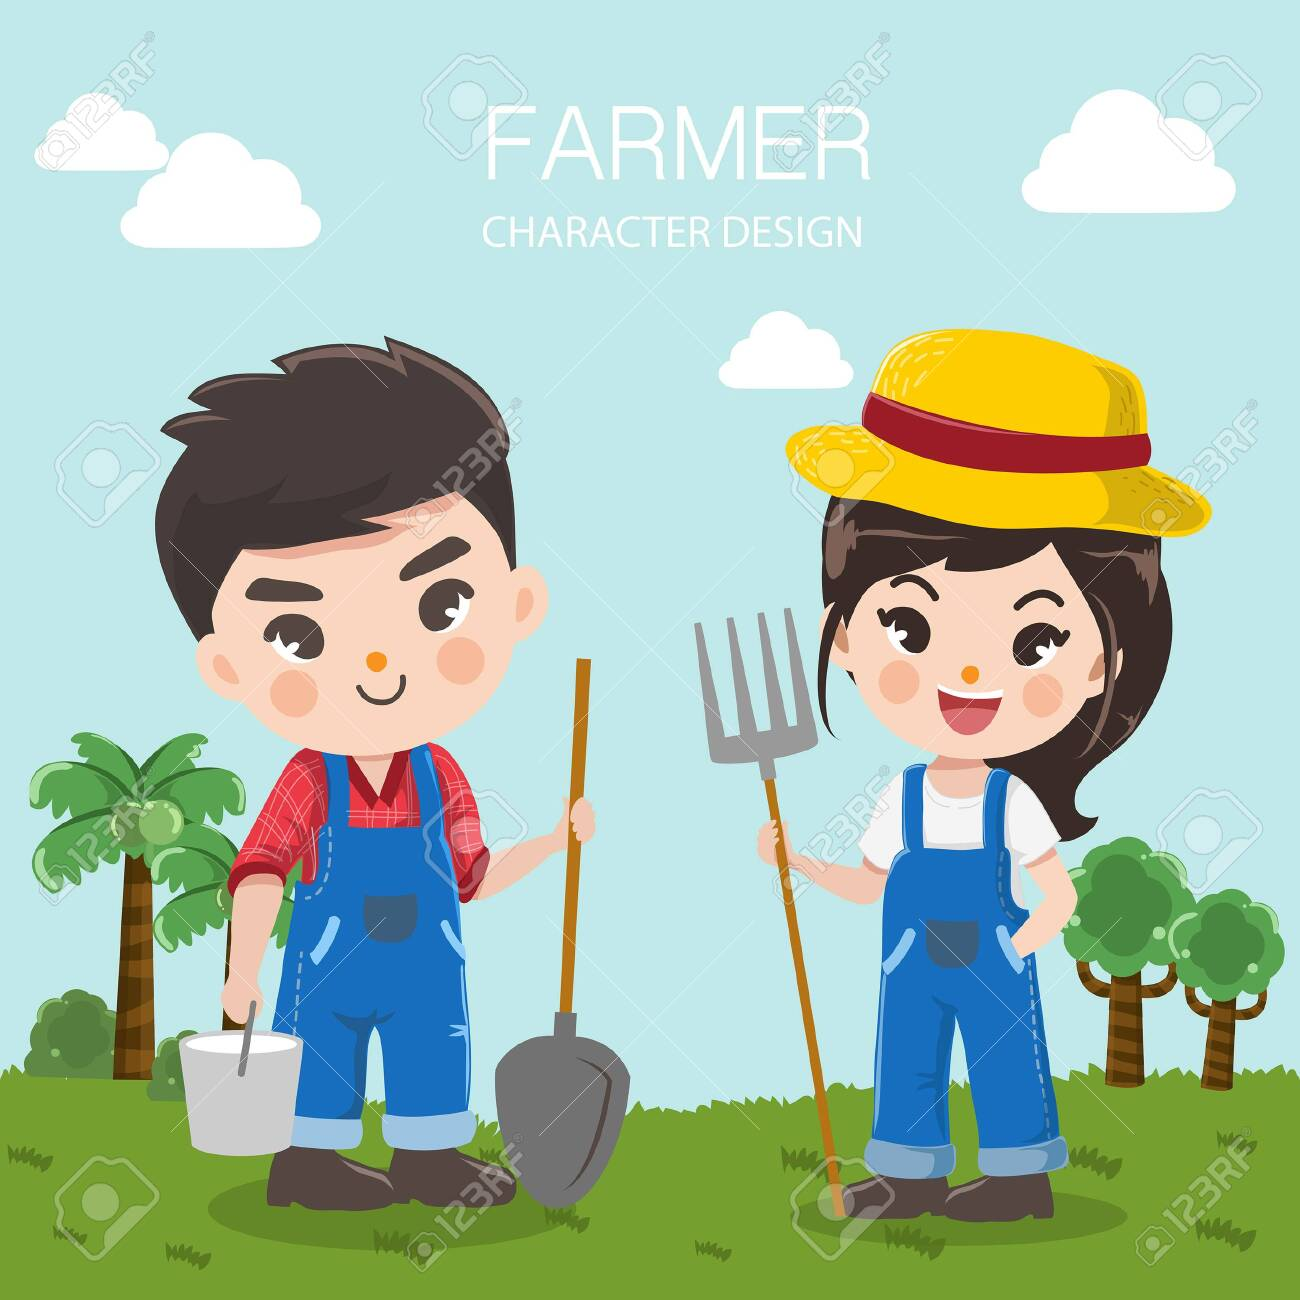 character design for livestock farms with farmers boy and girl in the background meadow and bright sky. - 123529068